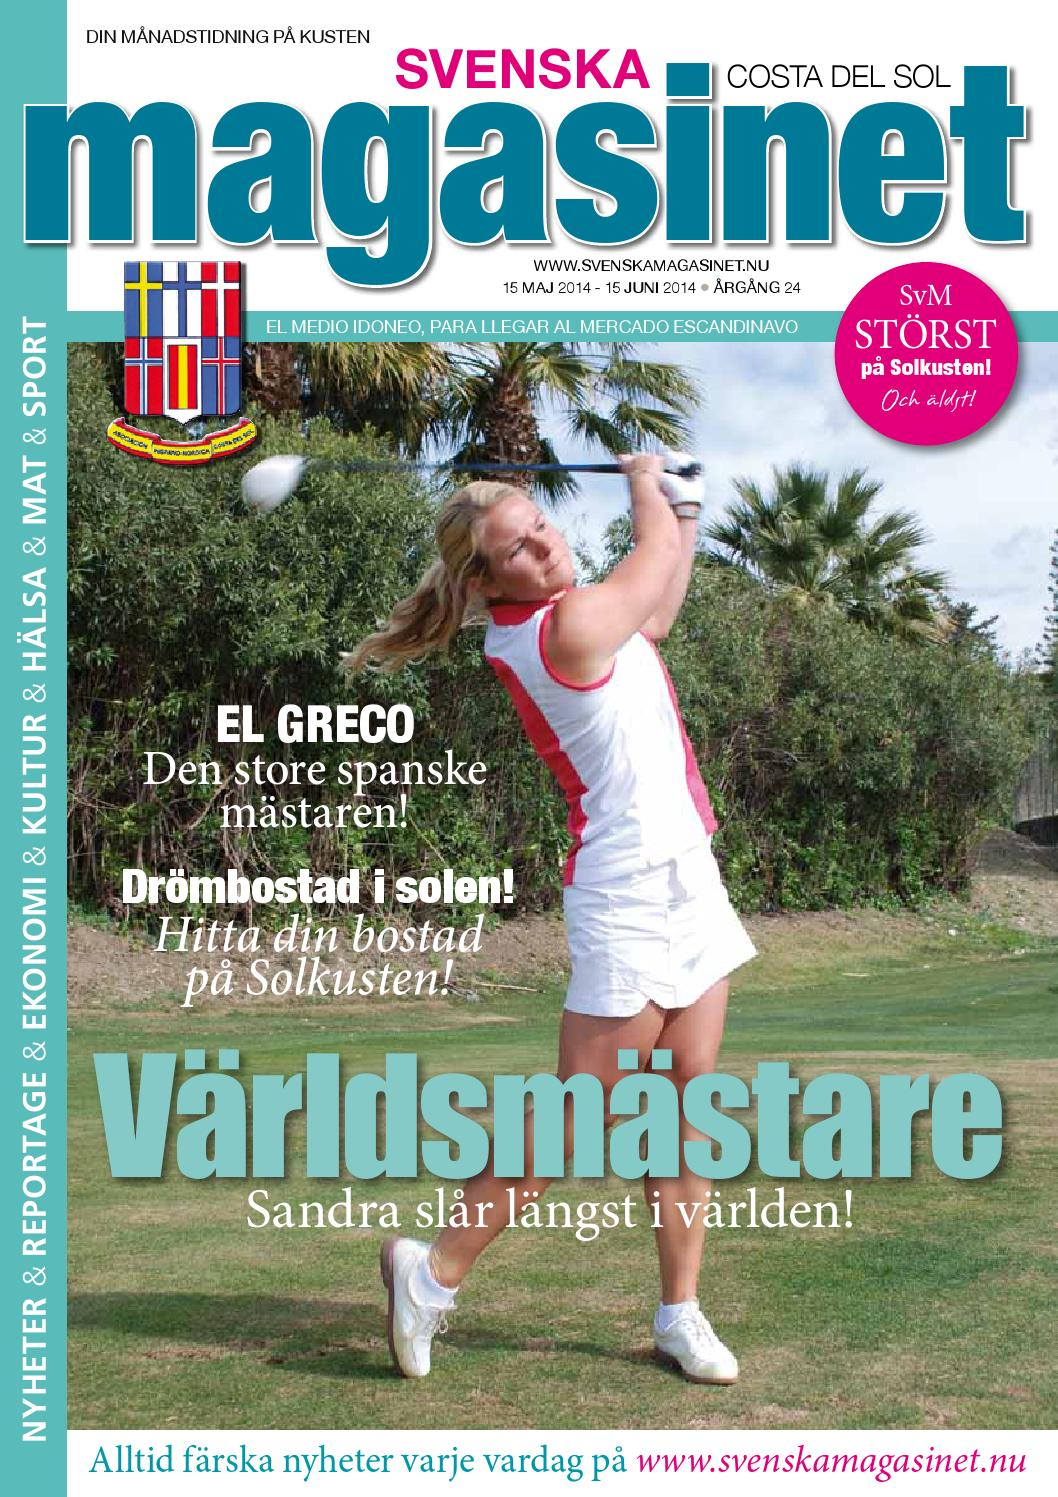 Jan 2015 by svenska magasinet, spanien   issuu